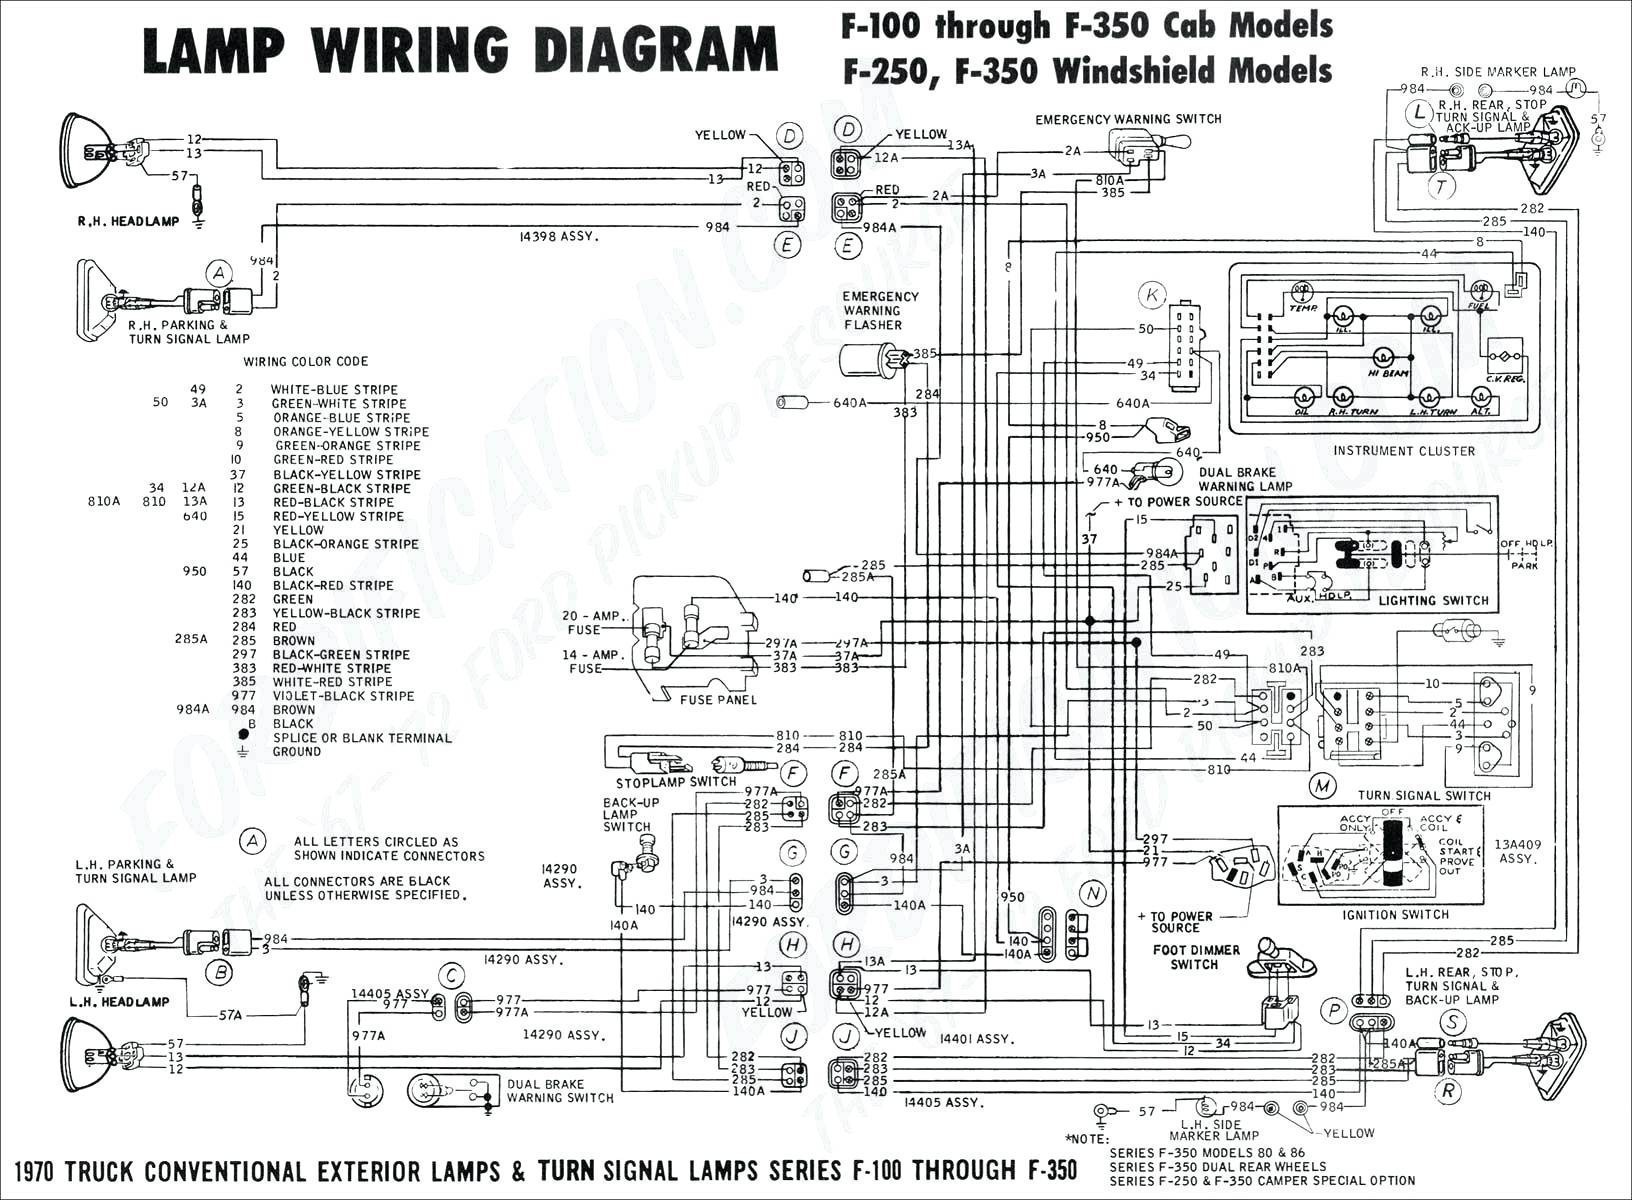 61 Chevy Truck Wiring Diagram List Of Schematic Circuit For 1961 C10 Apache Mini Simple Rh David Huggett Co Uk